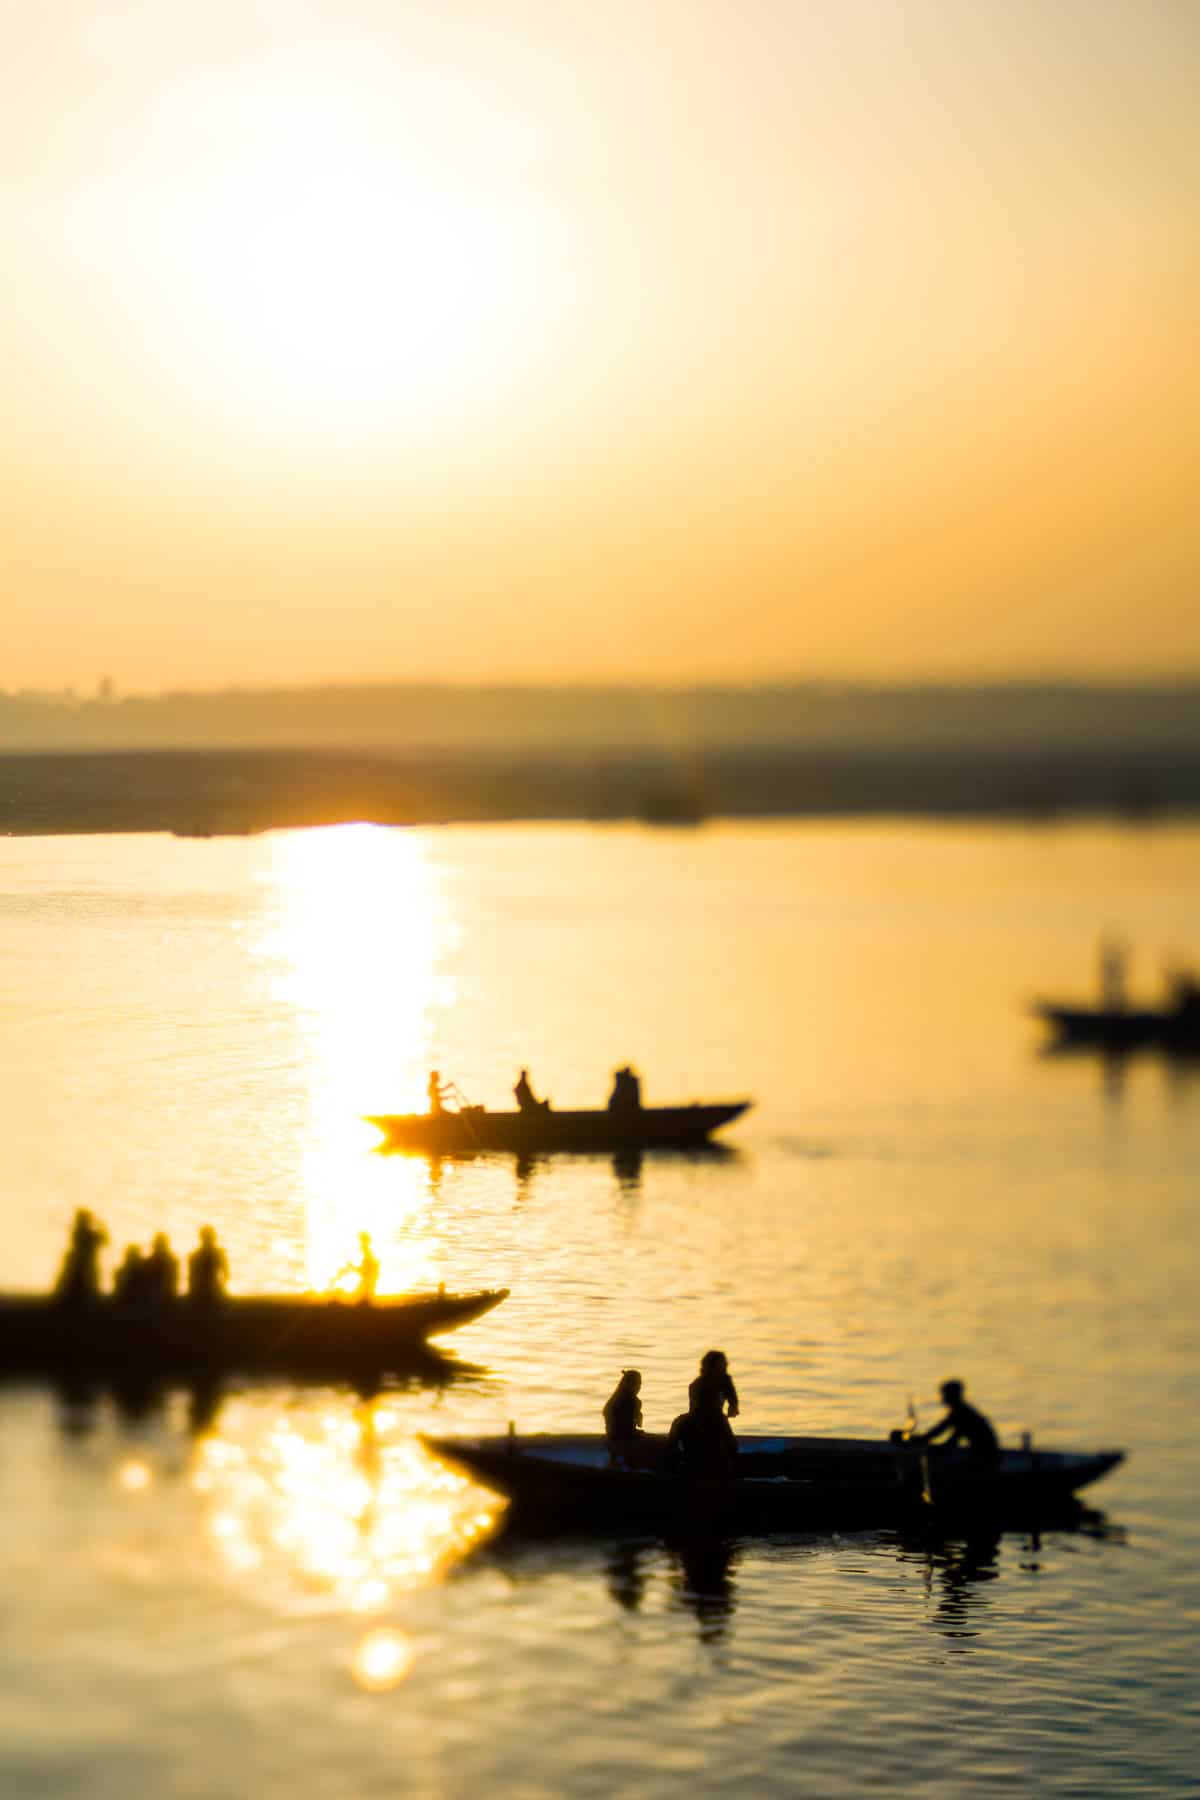 Sunrise boat rides on the Ganges in Varanasi, India, shot with a Lensbaby Edge 50 Optic.